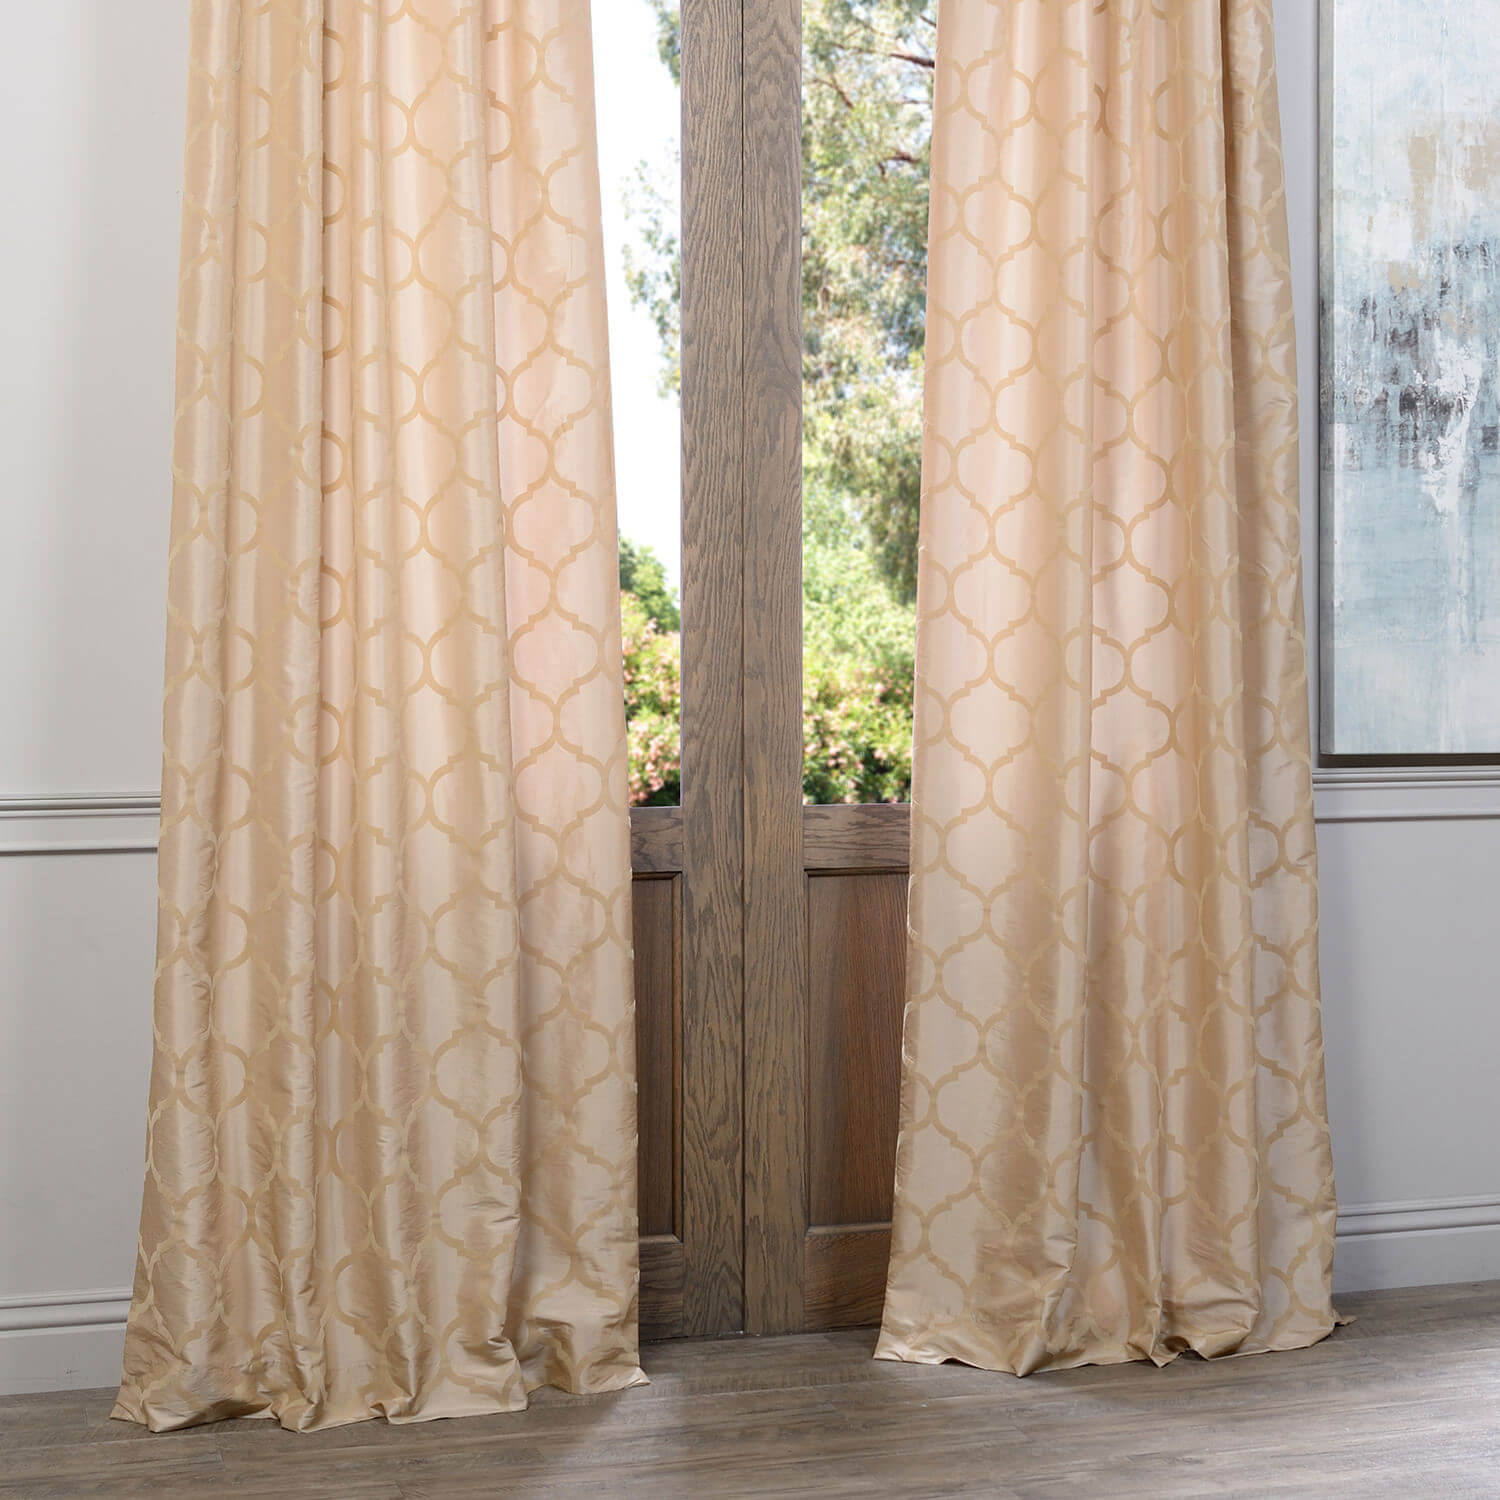 Marakesh Gold Flocked Faux Silk Taffeta Curtain